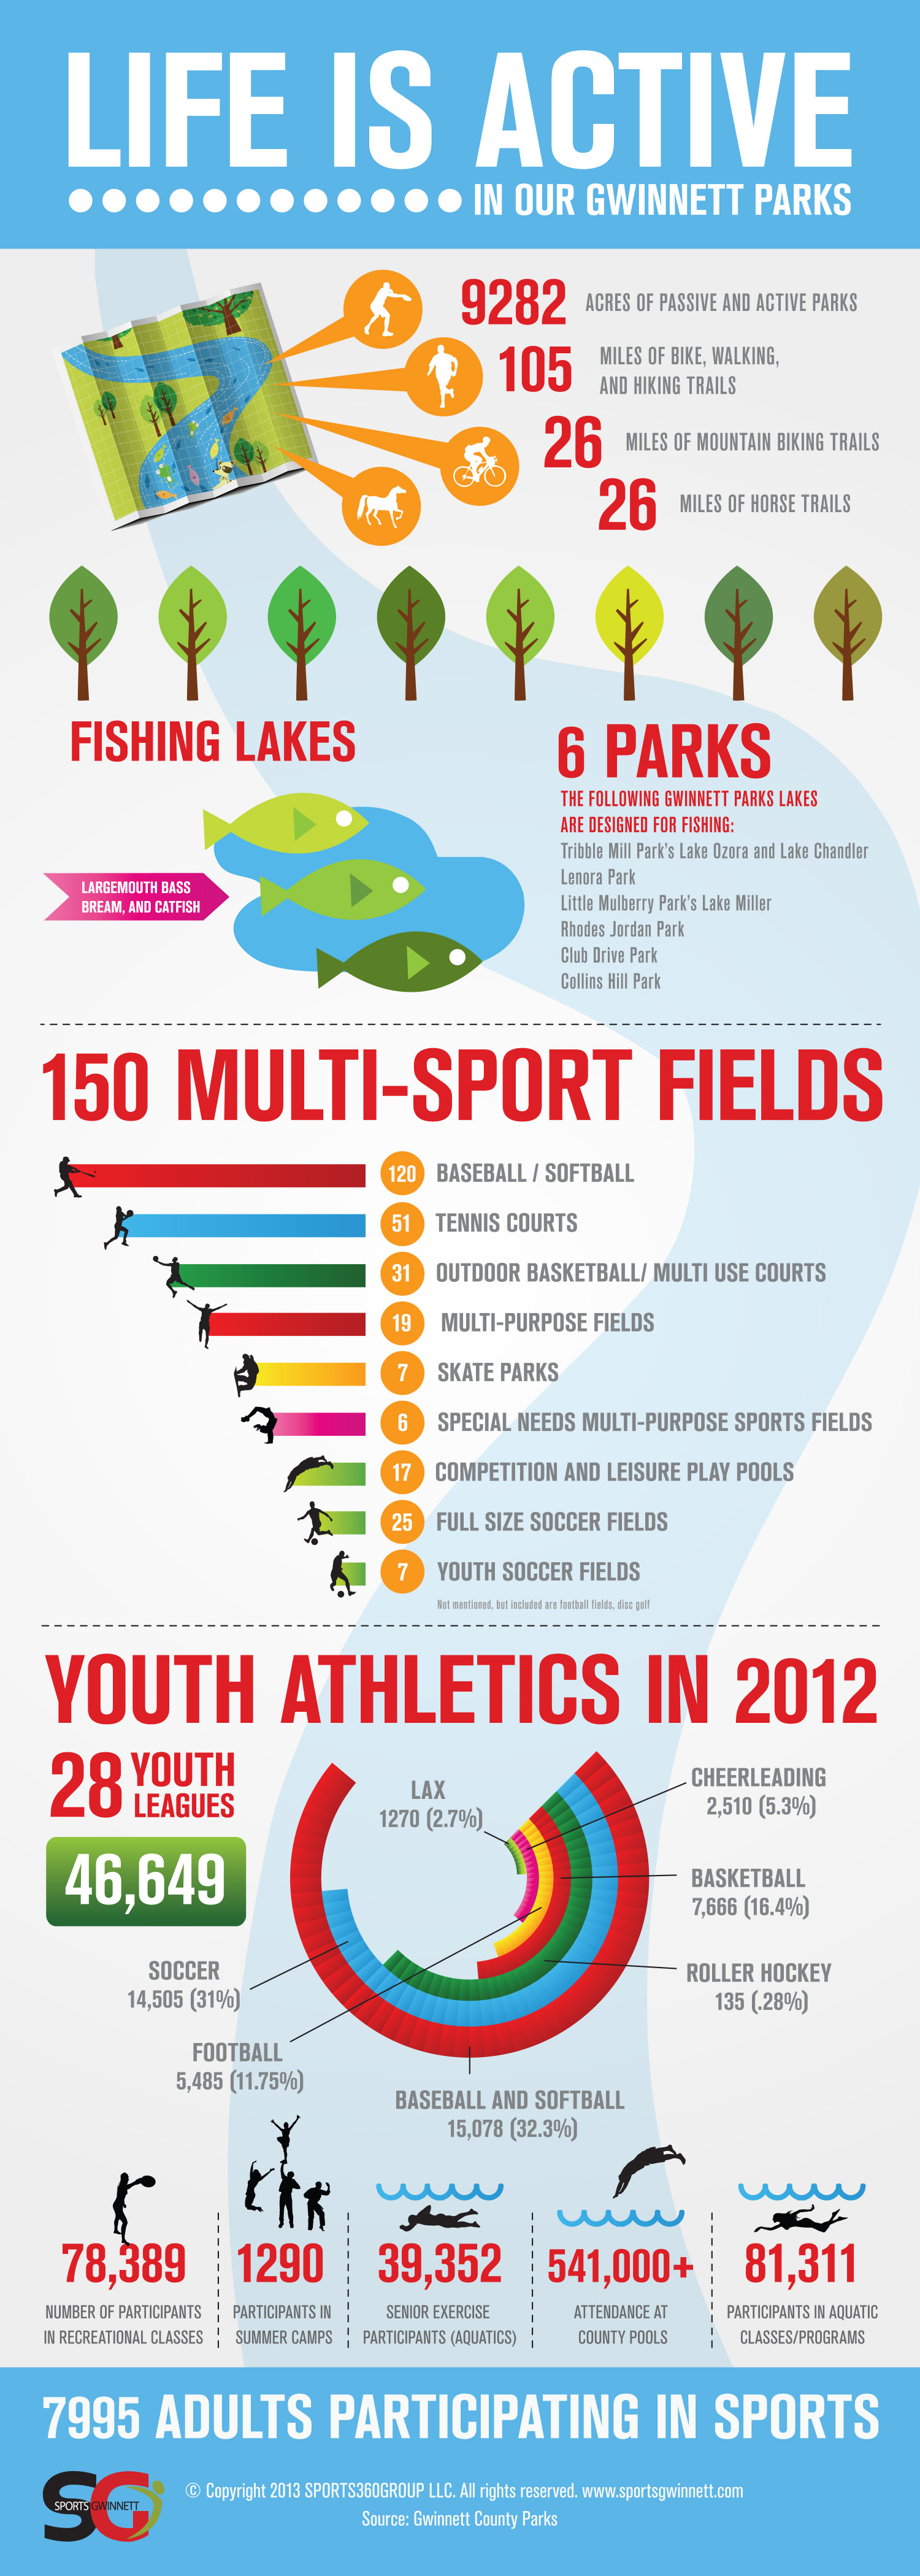 Life is Active in Gwinnett Parks Infographic